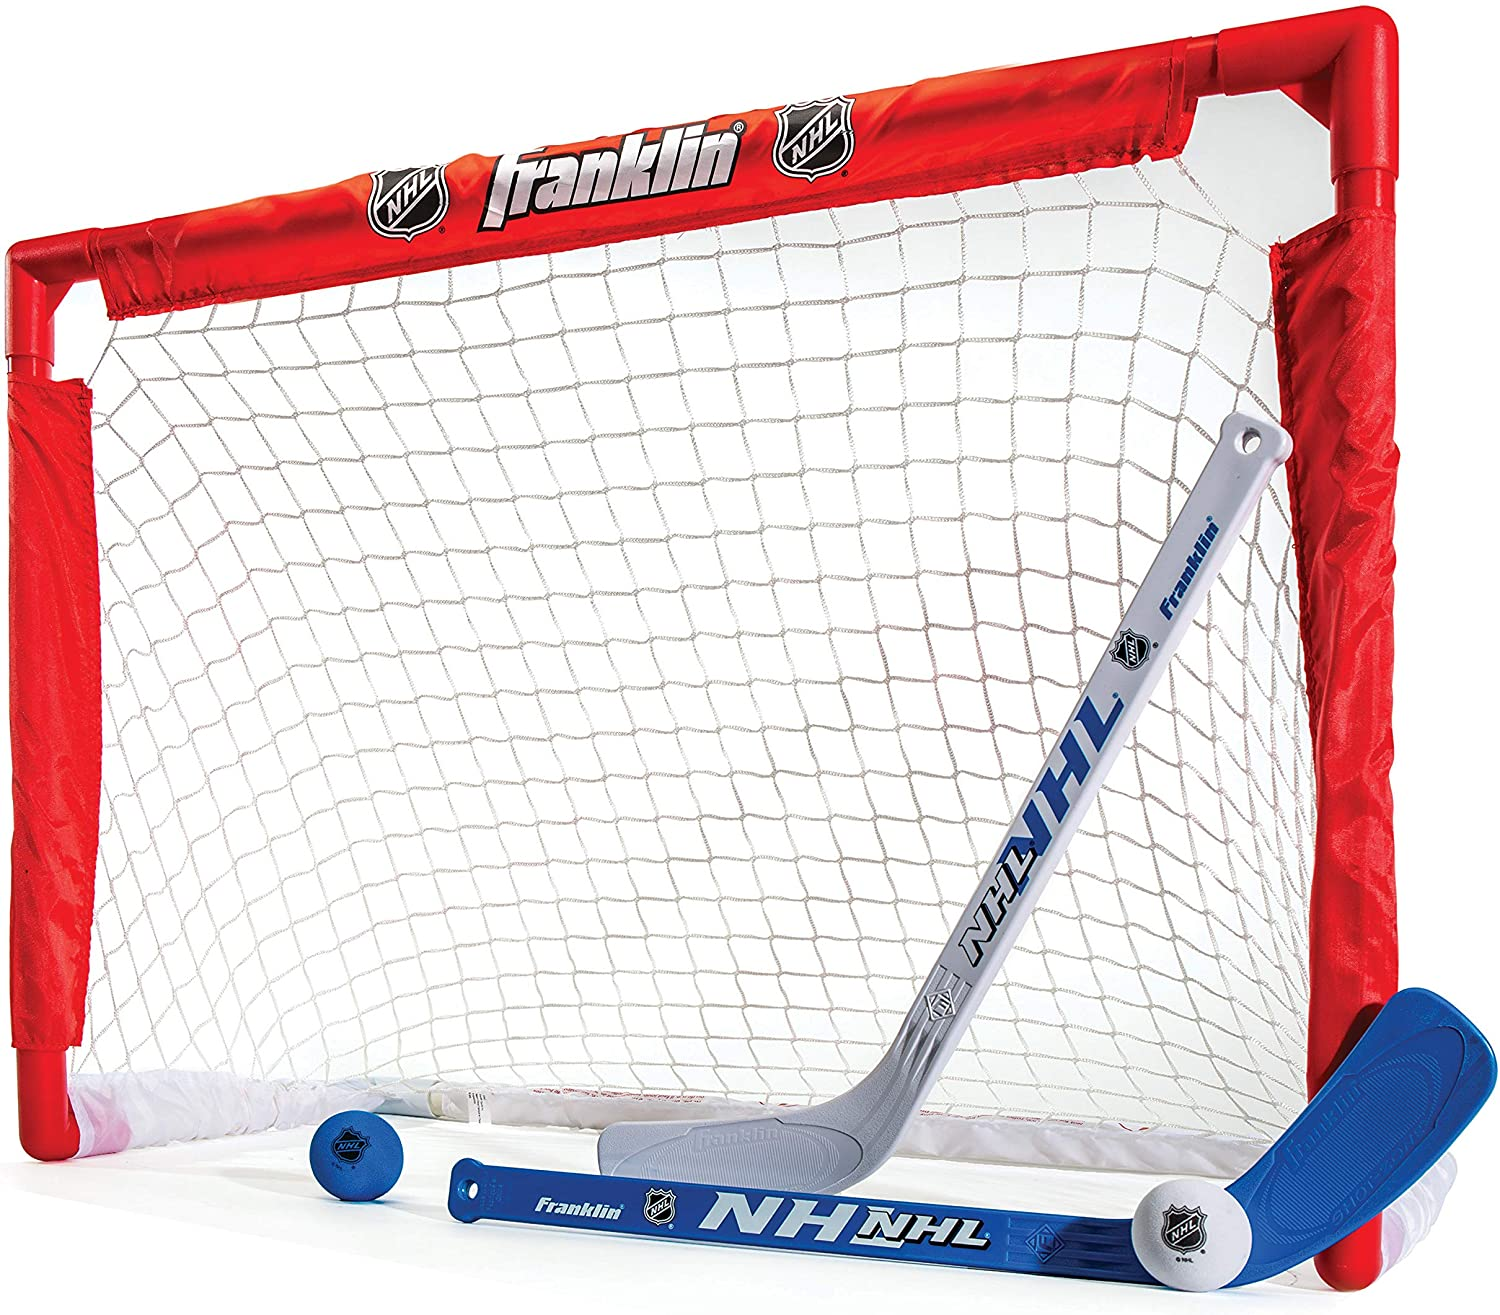 Franklin NHL Street Hockey Goal, Stick and Ball Set : Knee Hockey : Sports & Outdoors